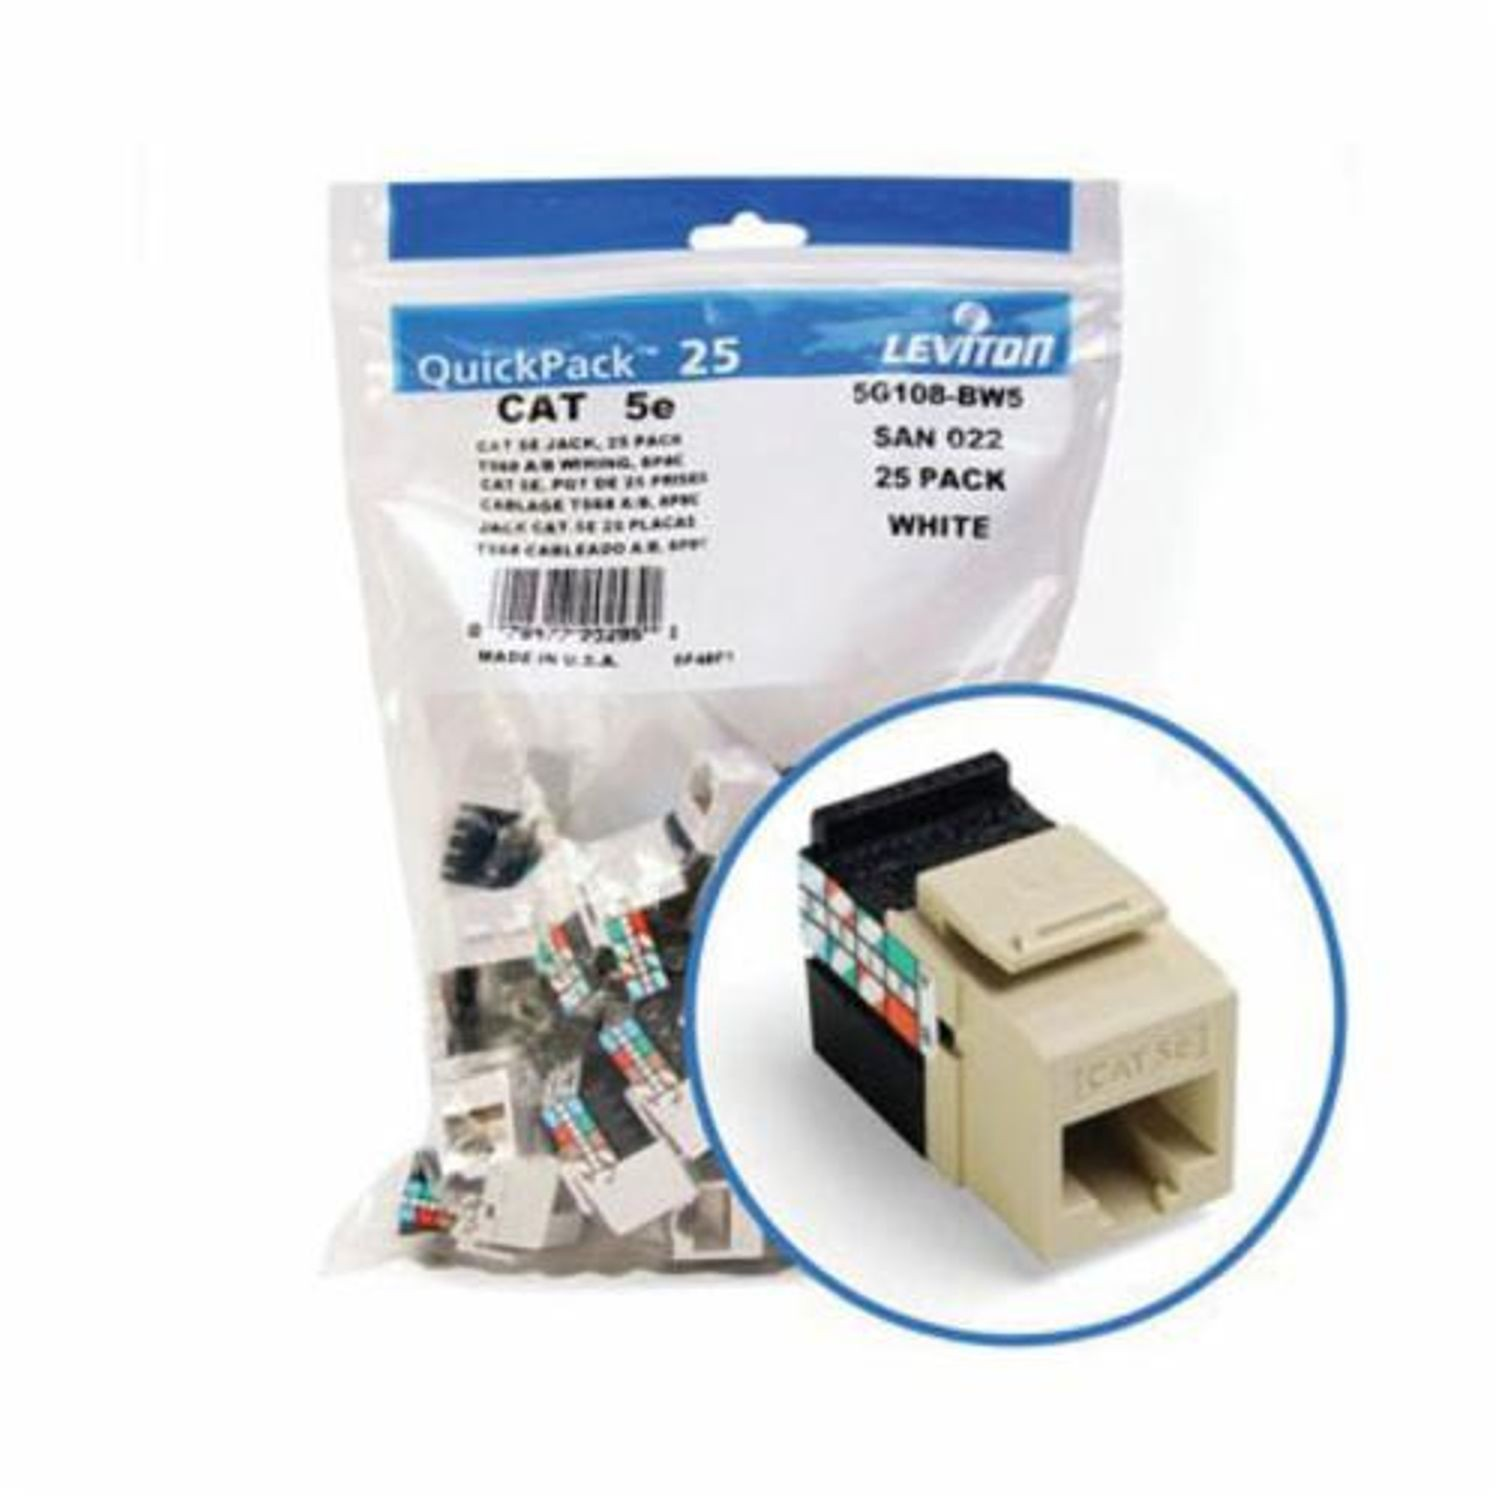 Quickport Gigamax 5g108 Bi5 Connector Cat5e Module Wiring Also Electrical Circuit Breaker Panel Box Together With Leviton Mount 1 Port Plastic Ivory